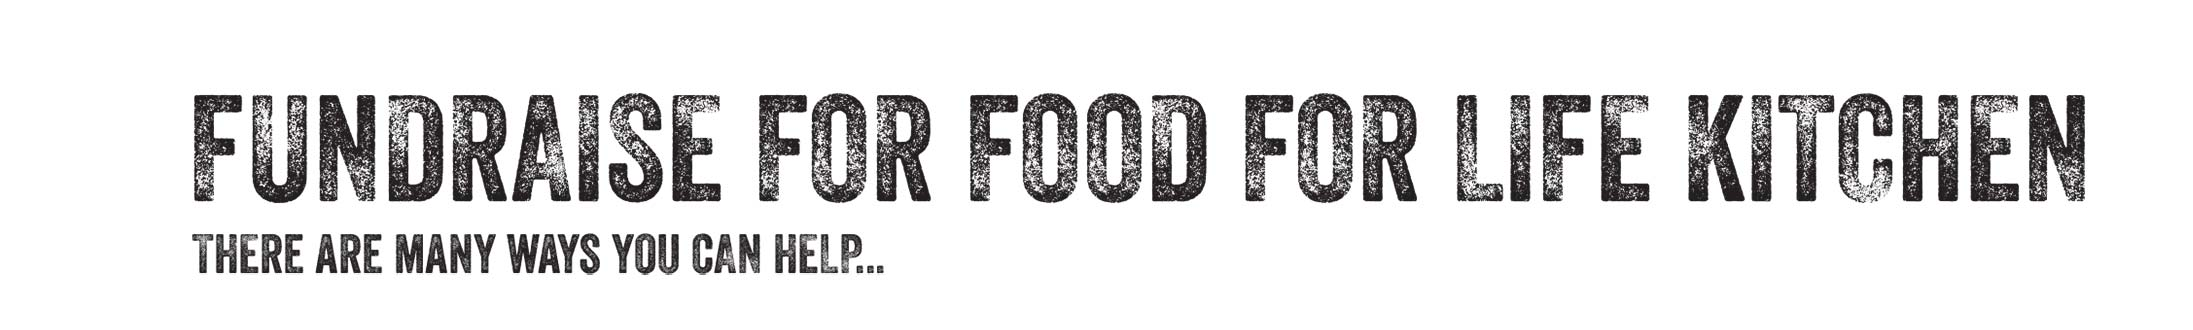 Fundraise for Food For Life Kitchen